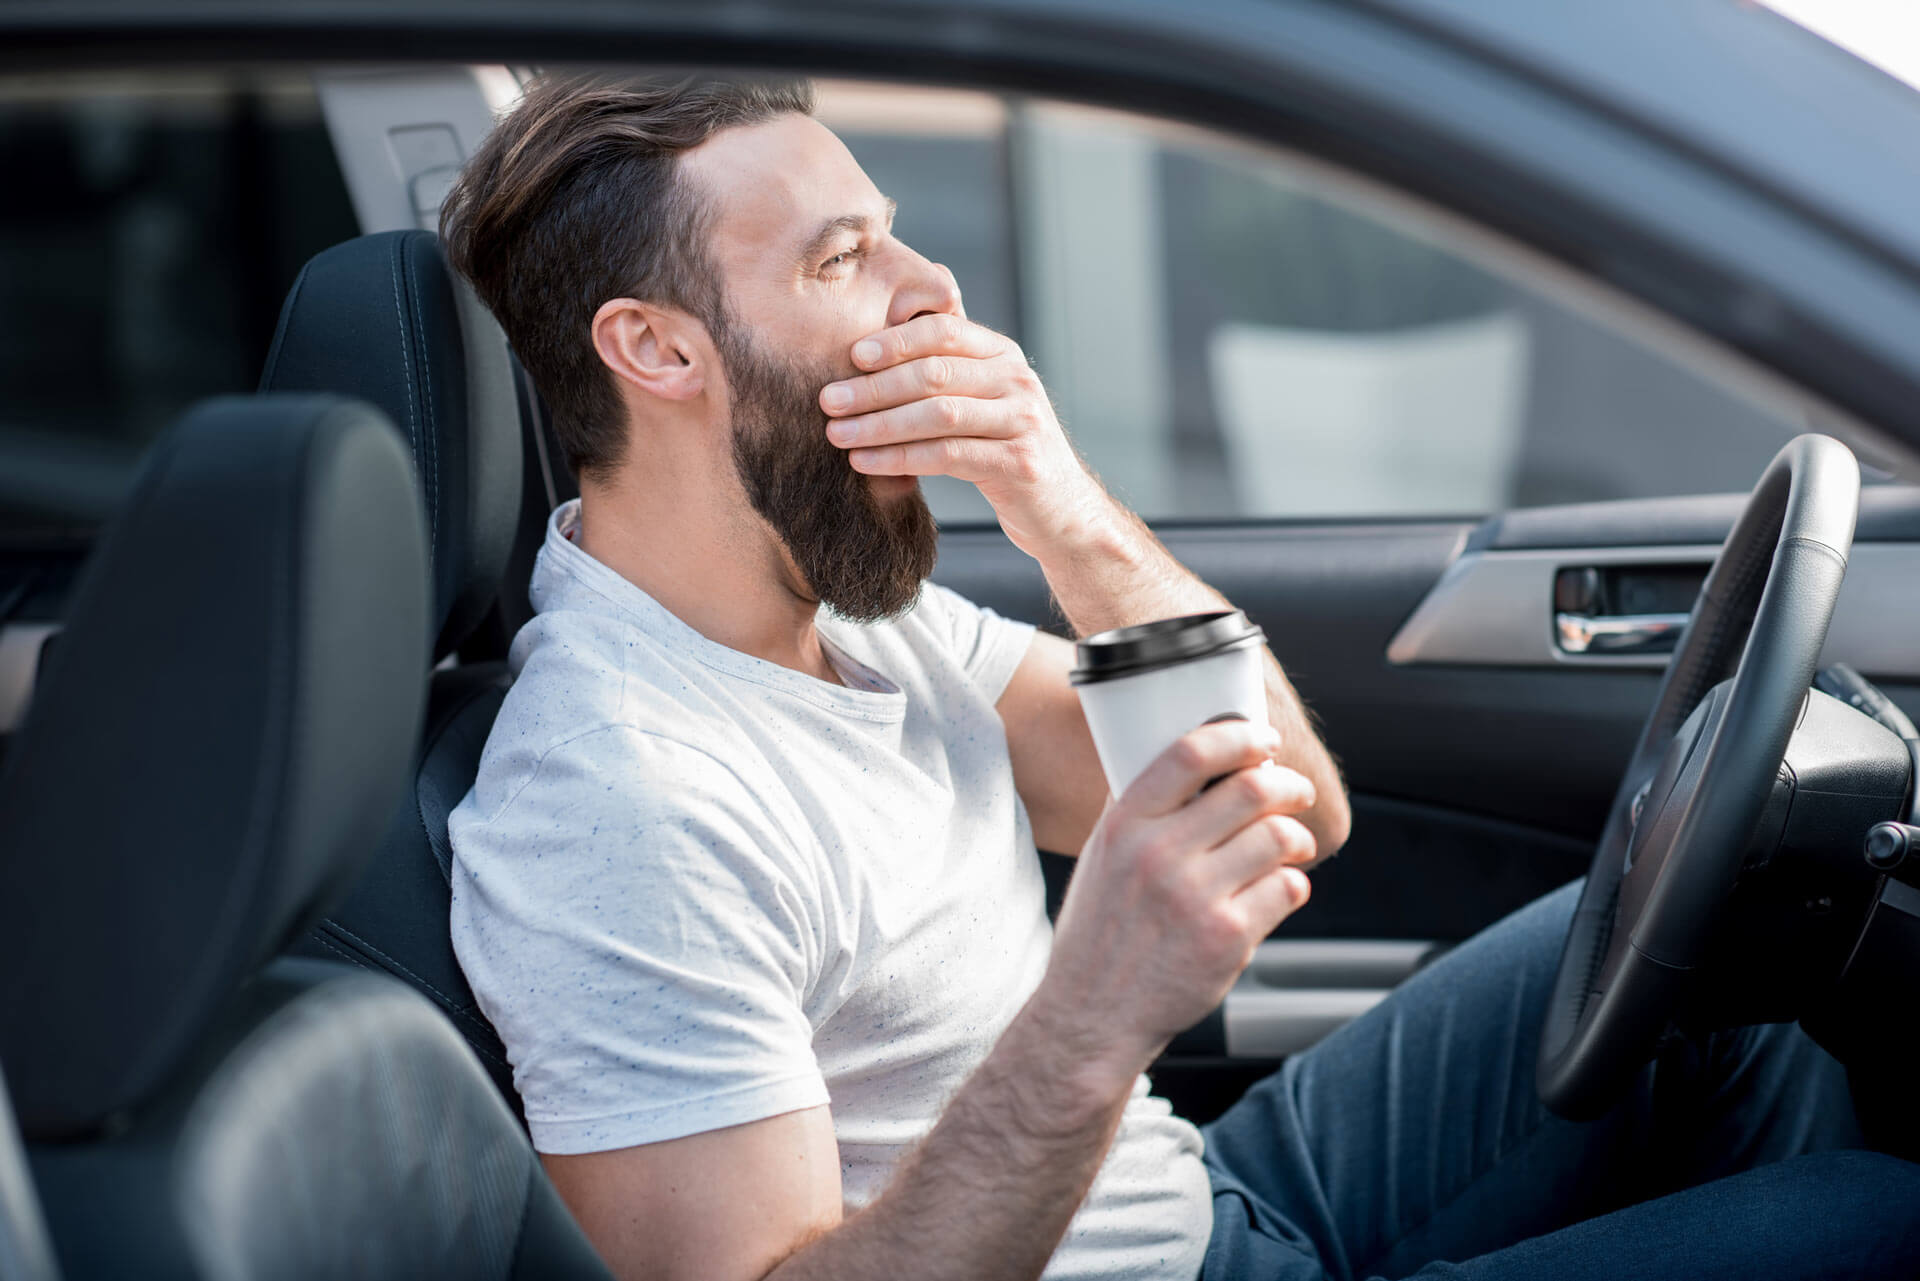 Drowsy Driving: Long Shifts May Result in Impairment Behind the Wheel